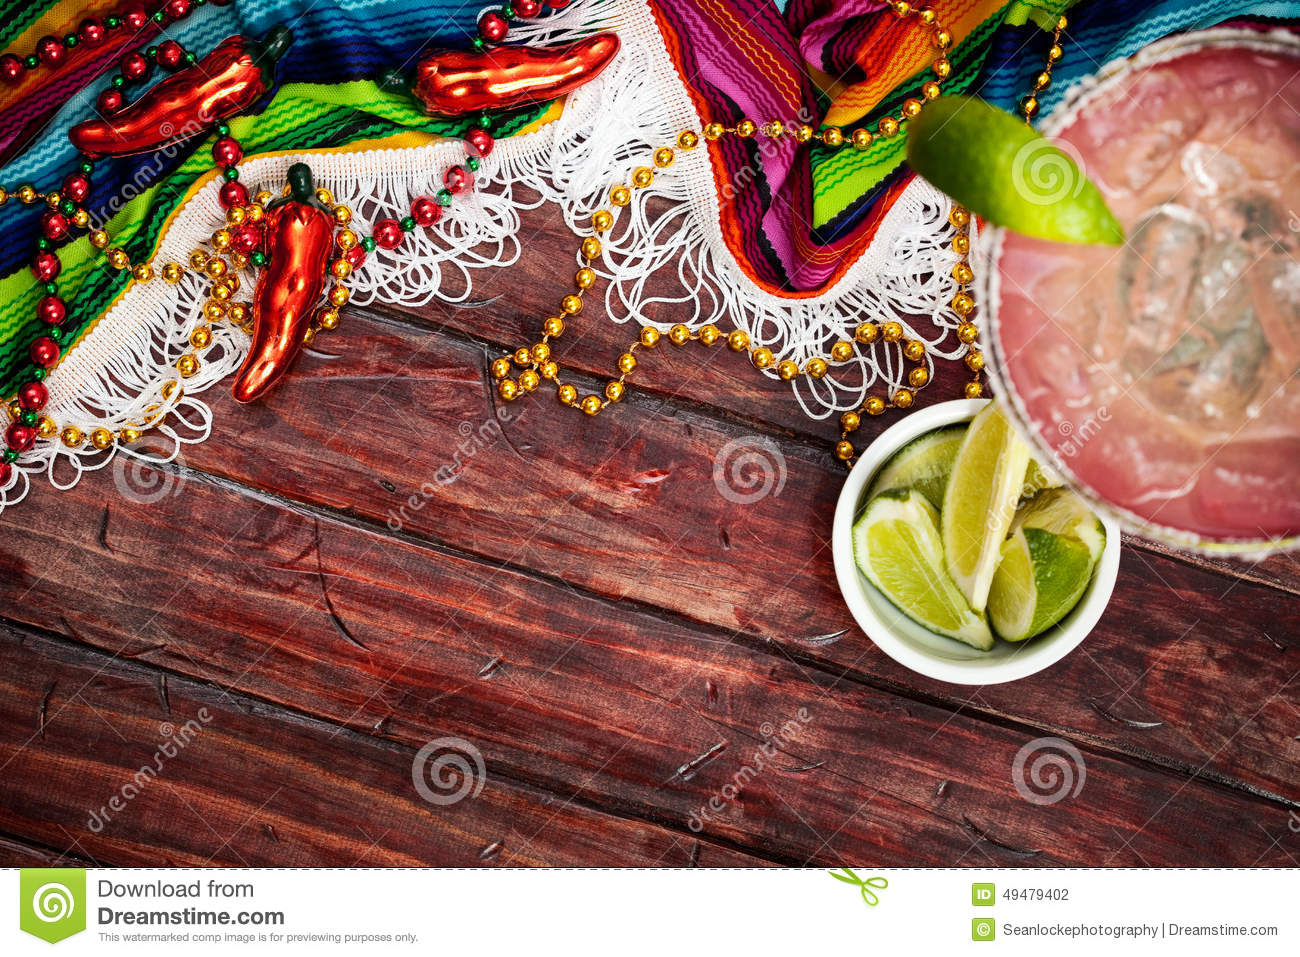 Download Background: Cinco De Mayo Celebration With Margarita Stock Photo - Image of festive, wooden: 49479402